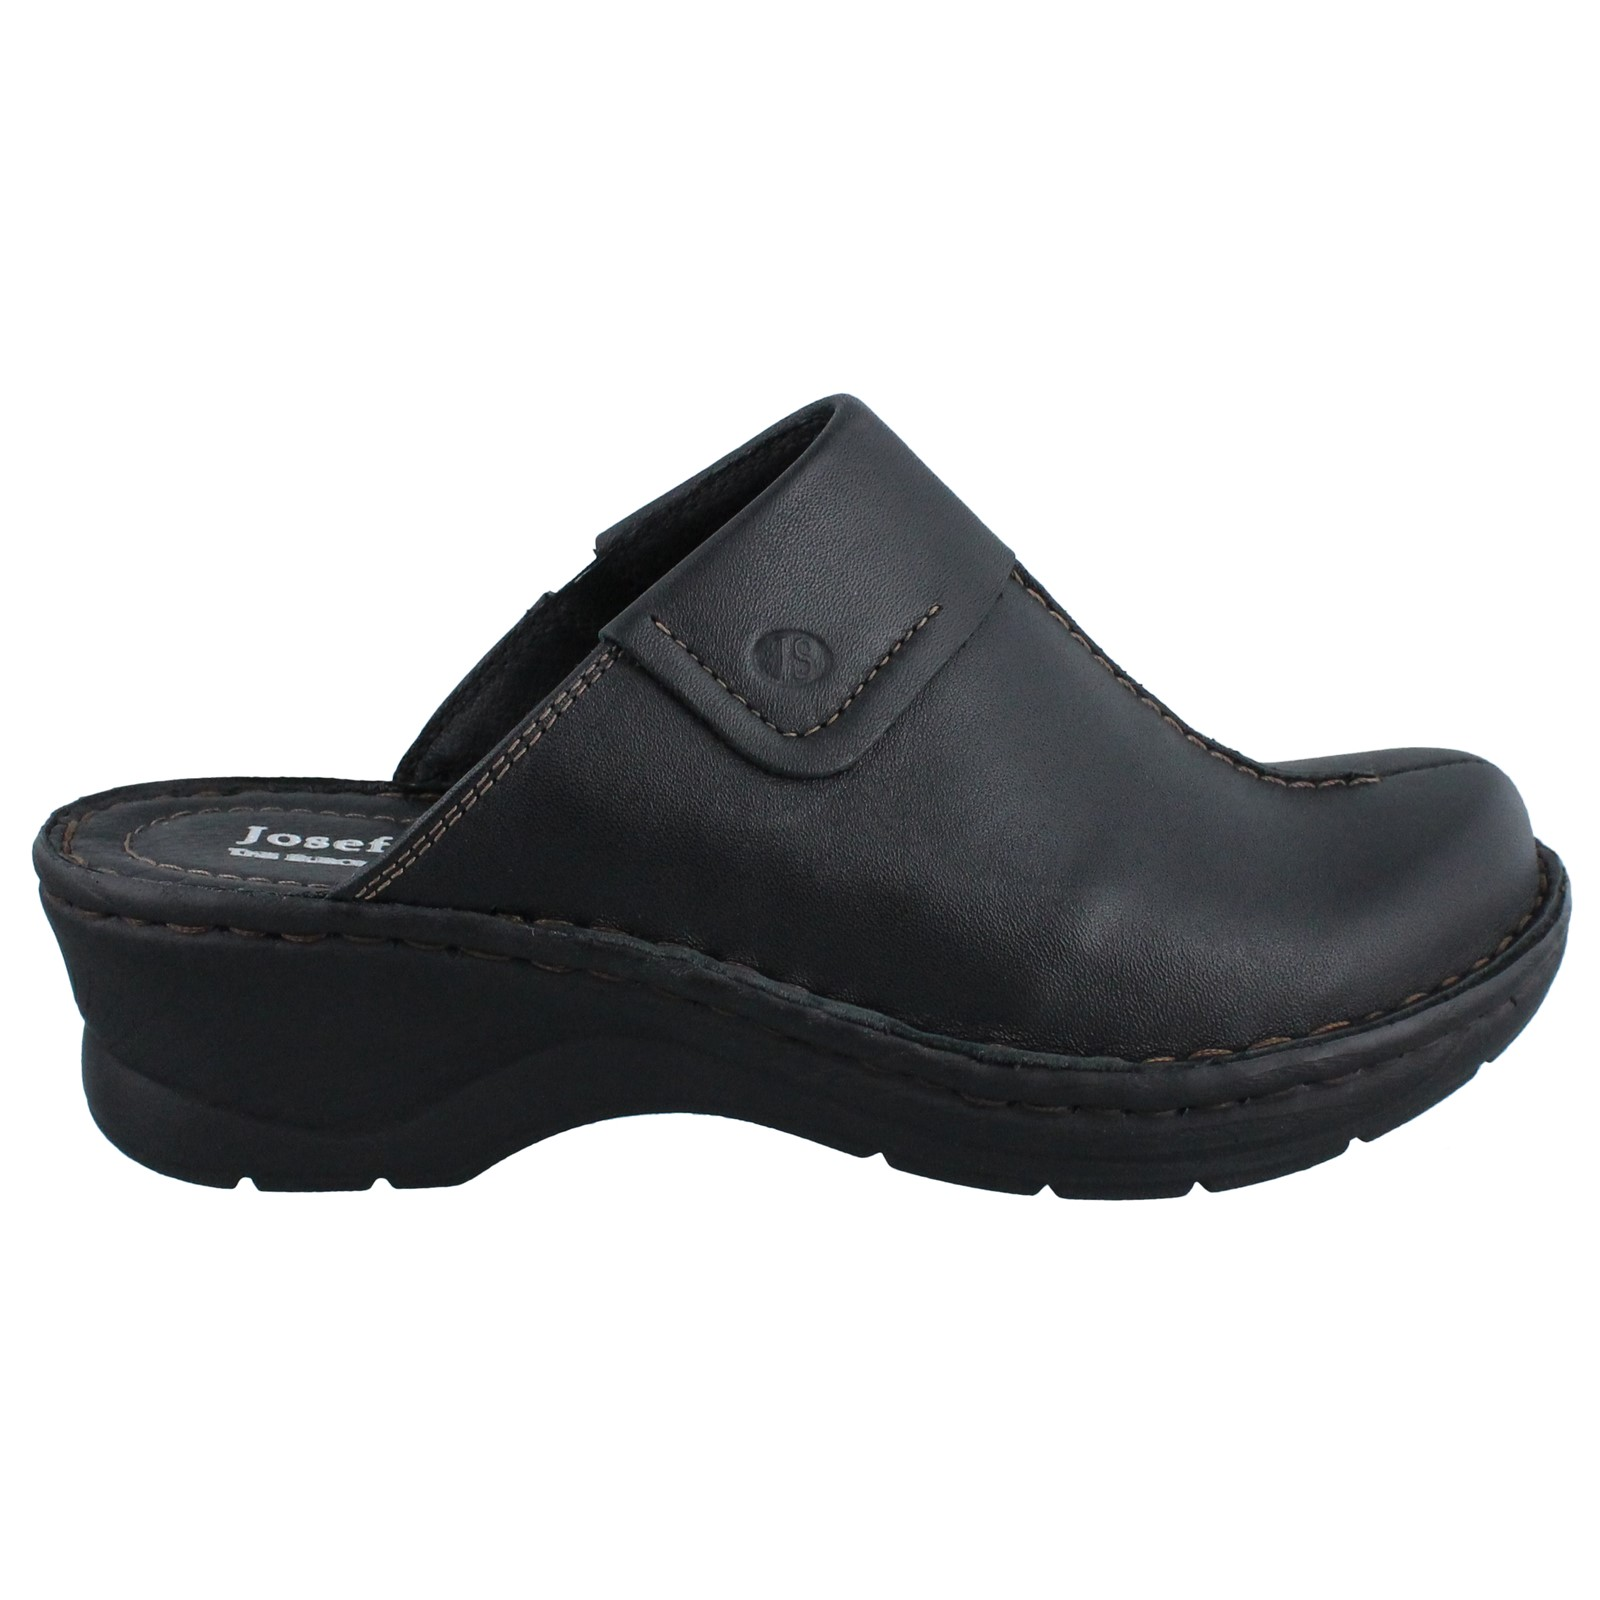 Women's Josef Seibel, Carole Slip on Clog